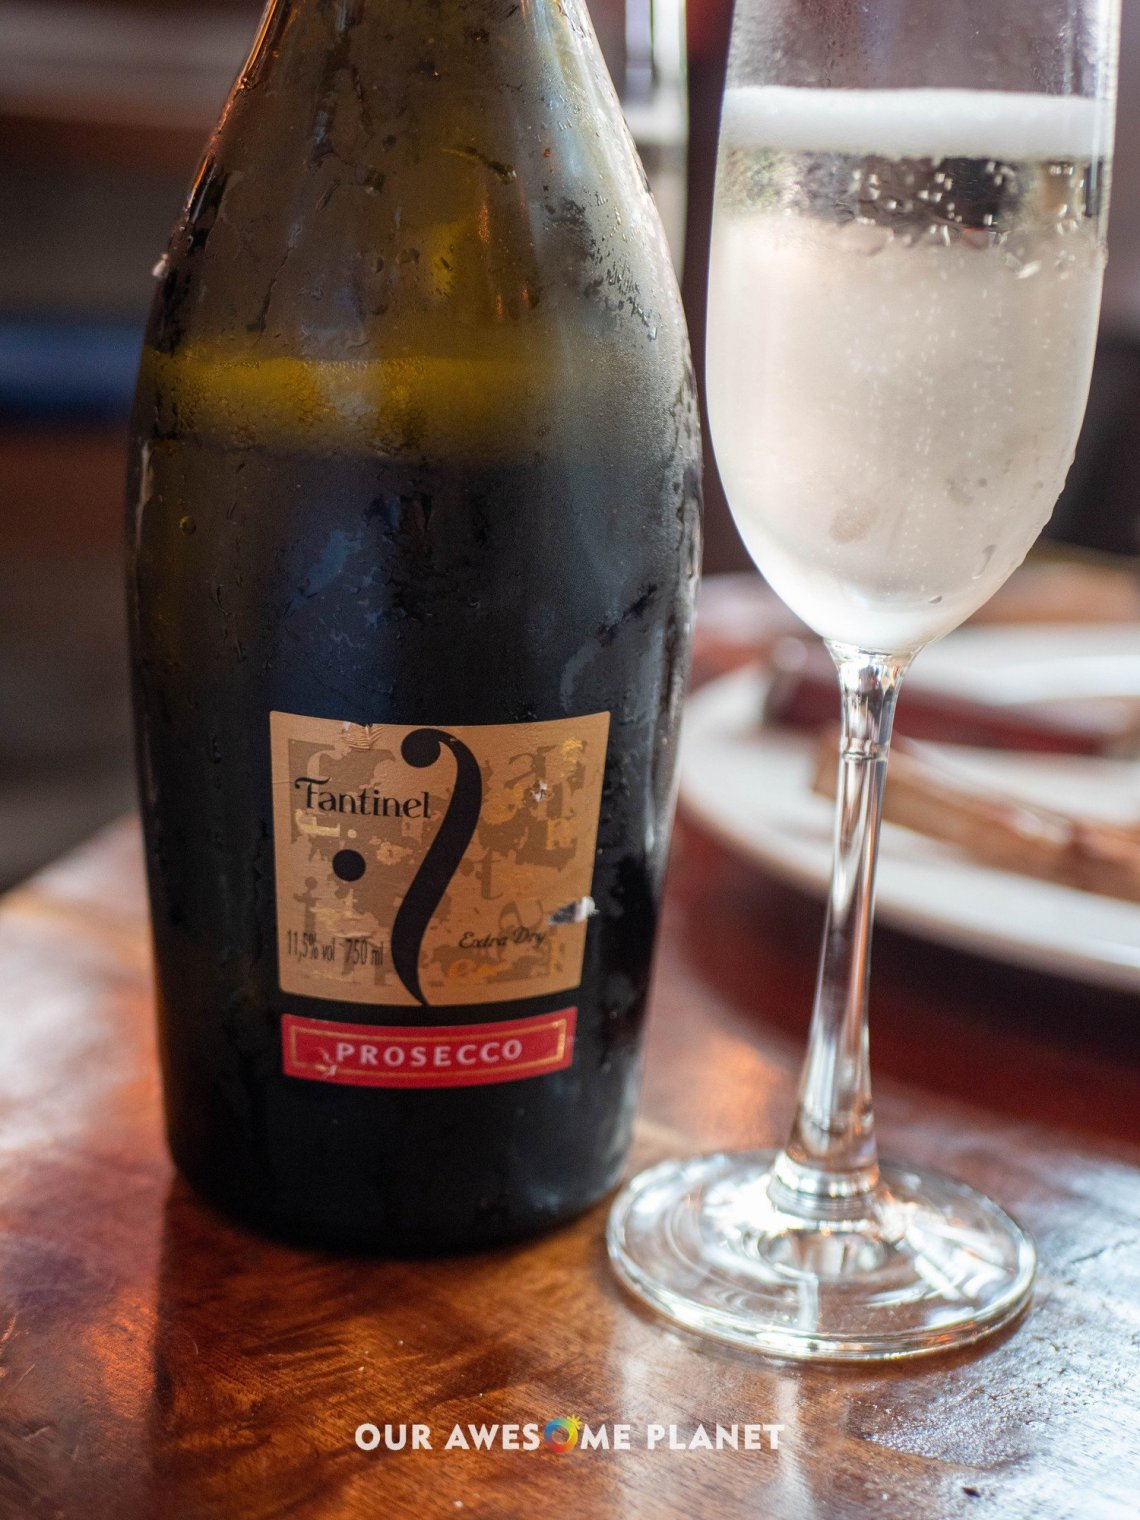 Fantinel Prosecco Extra Dry Blanc NV